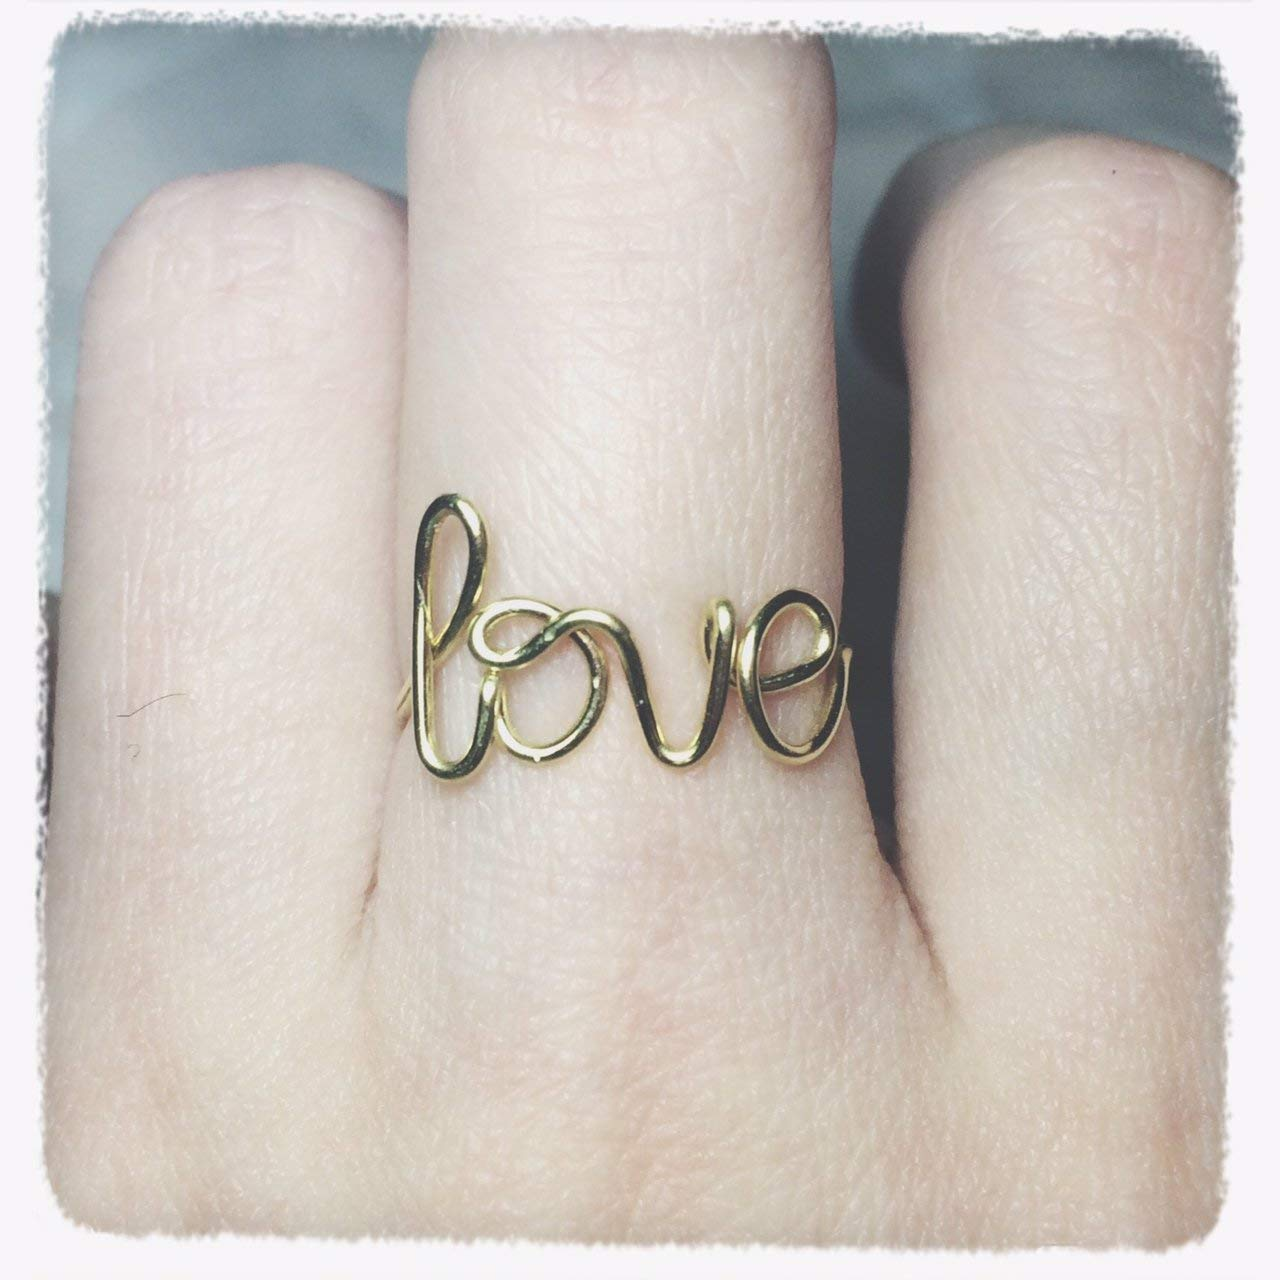 1fe218bdb3 Get Quotations · Love Ring/Promise Ring/gold love ring/silver love ring/Wedding  Gift